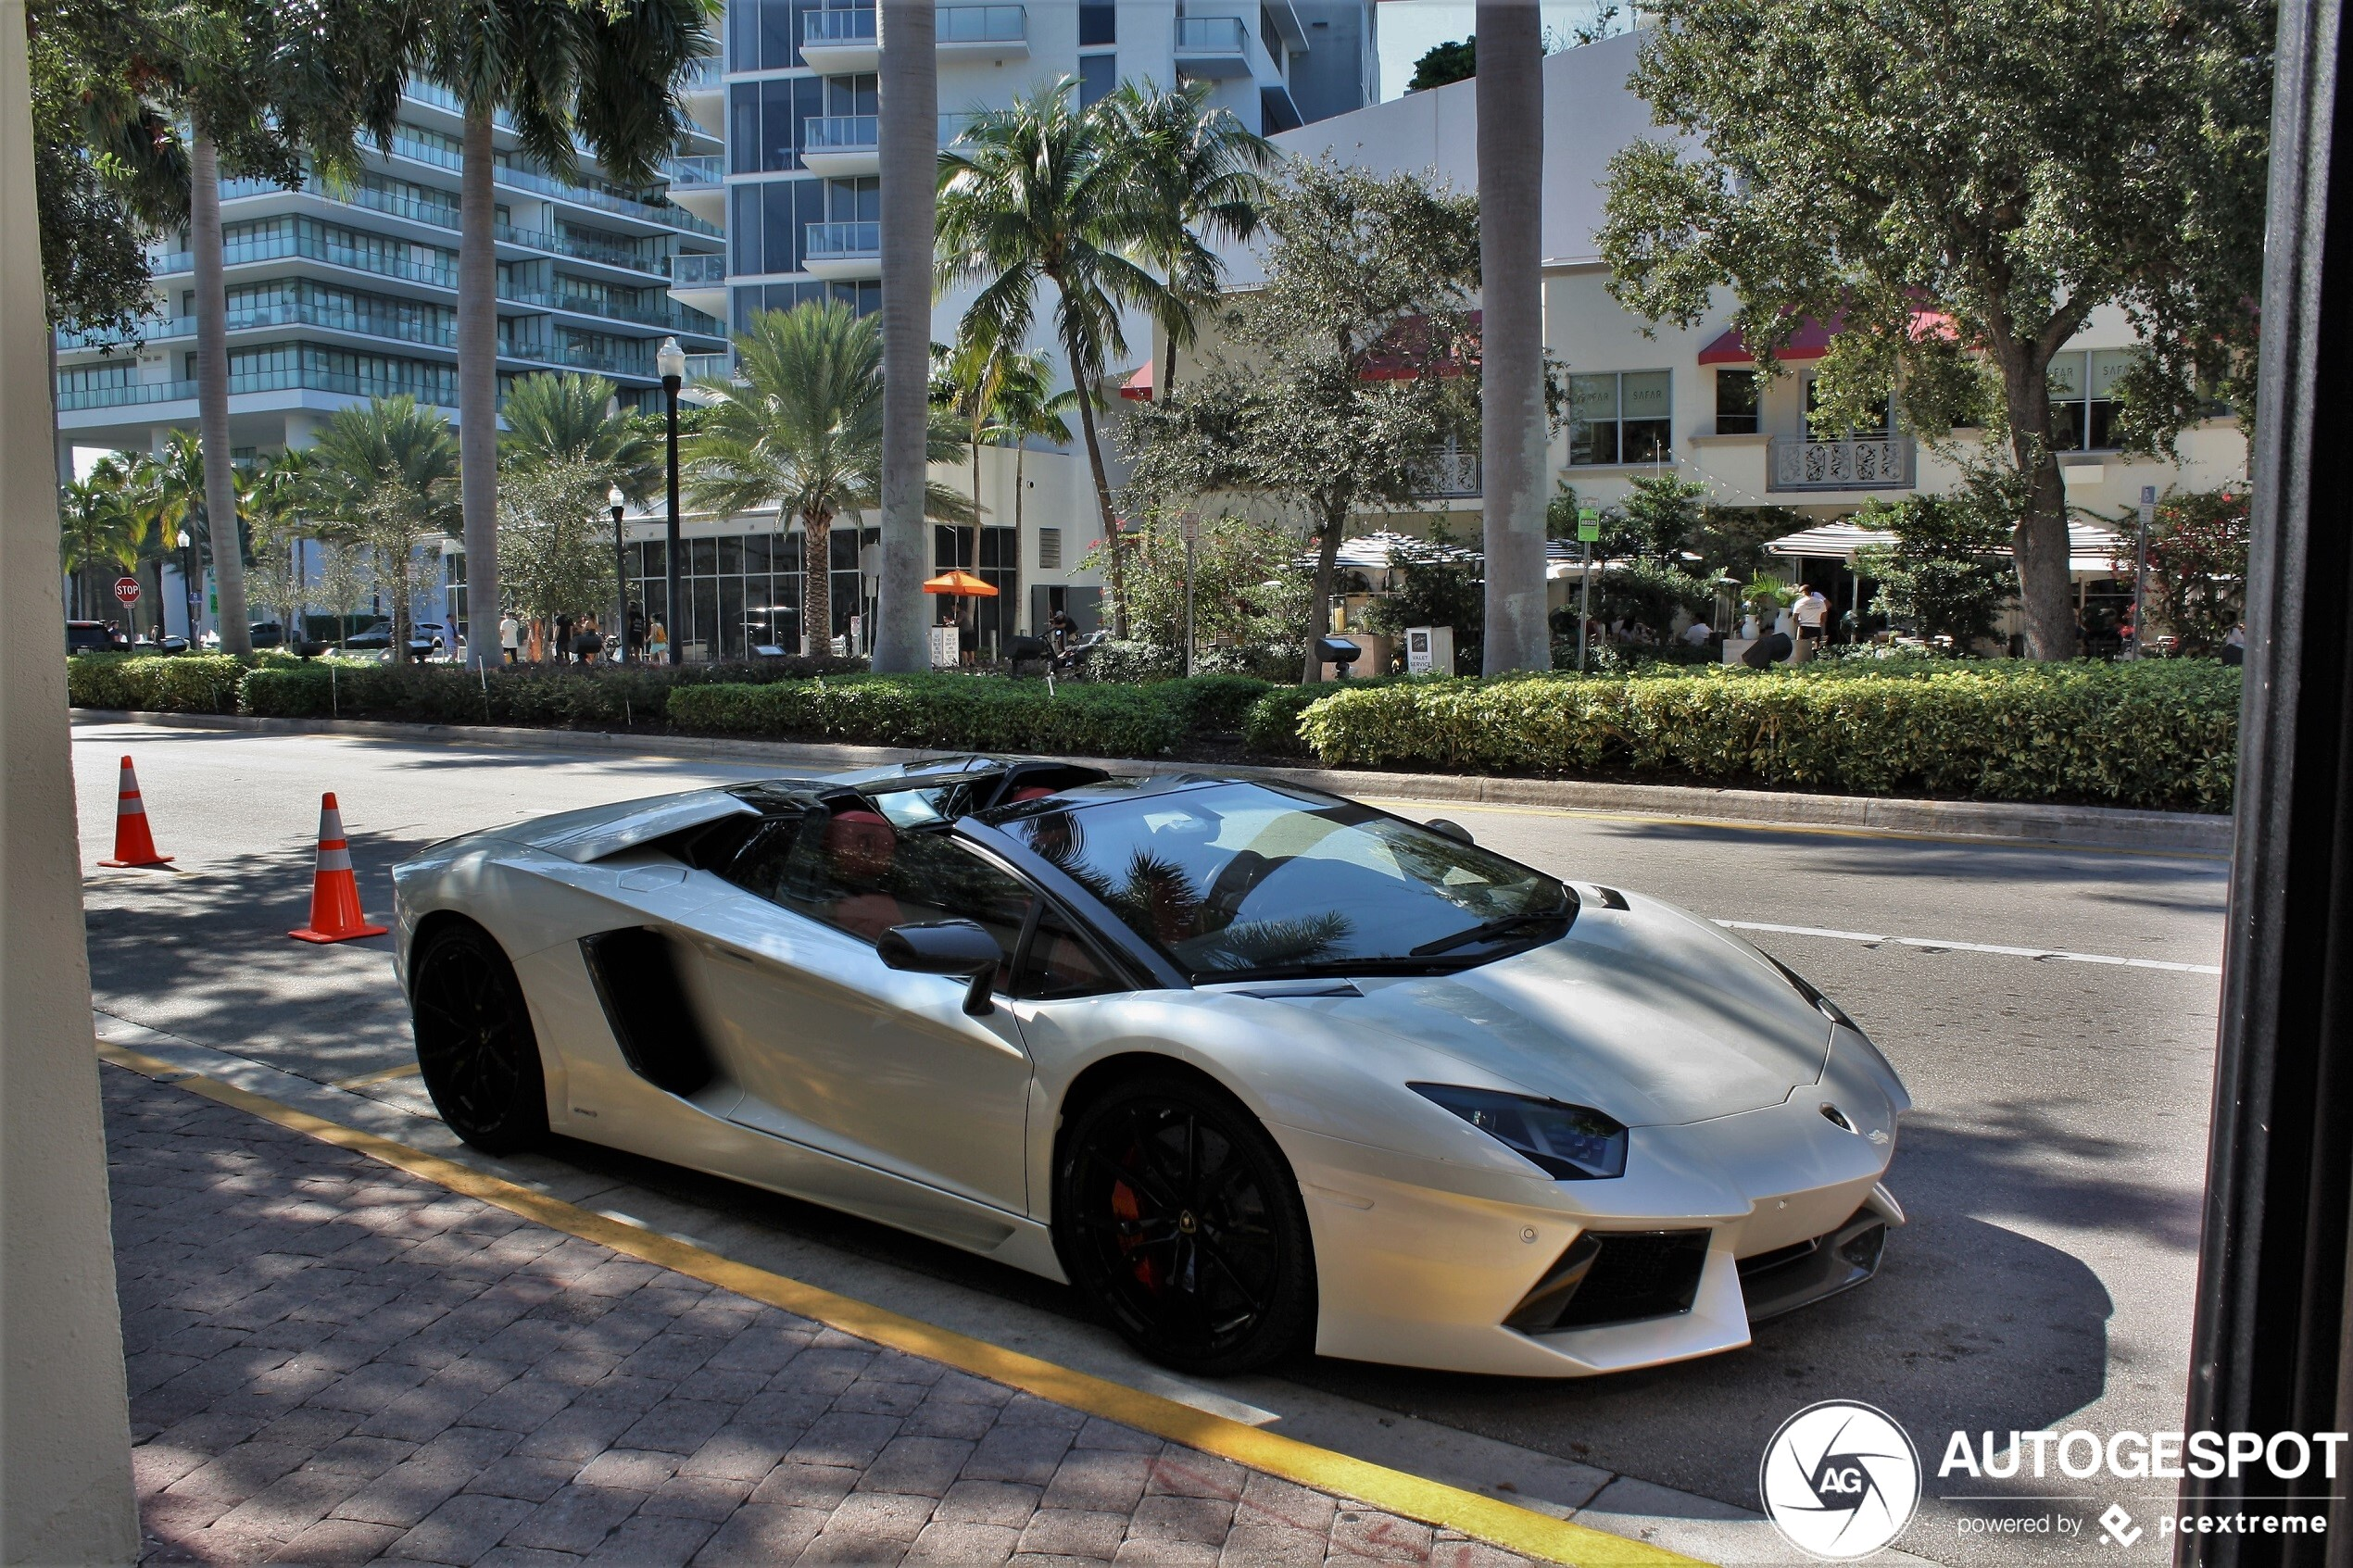 Spot of the day USA: Lamborghini Aventador by Horse-power